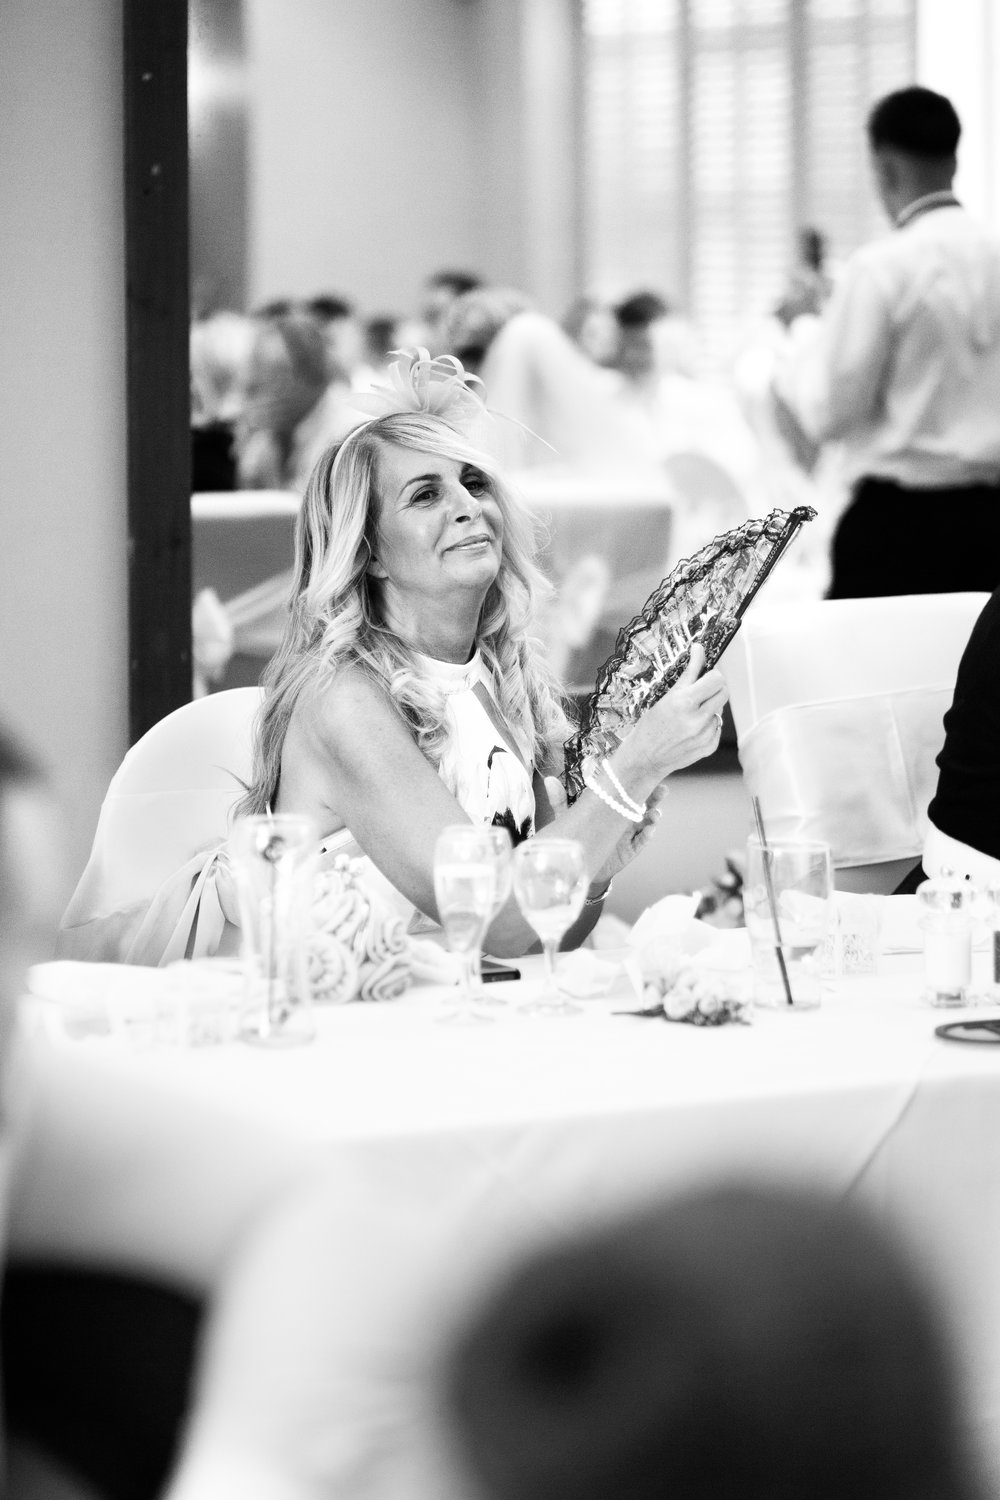 wedding-lea-cooper-photography-willenhall-west-midlands-wolverhampton-dudley-birmingham-uk-marriage-hadley-park-east-telford-mother-of-the-bride.jpg